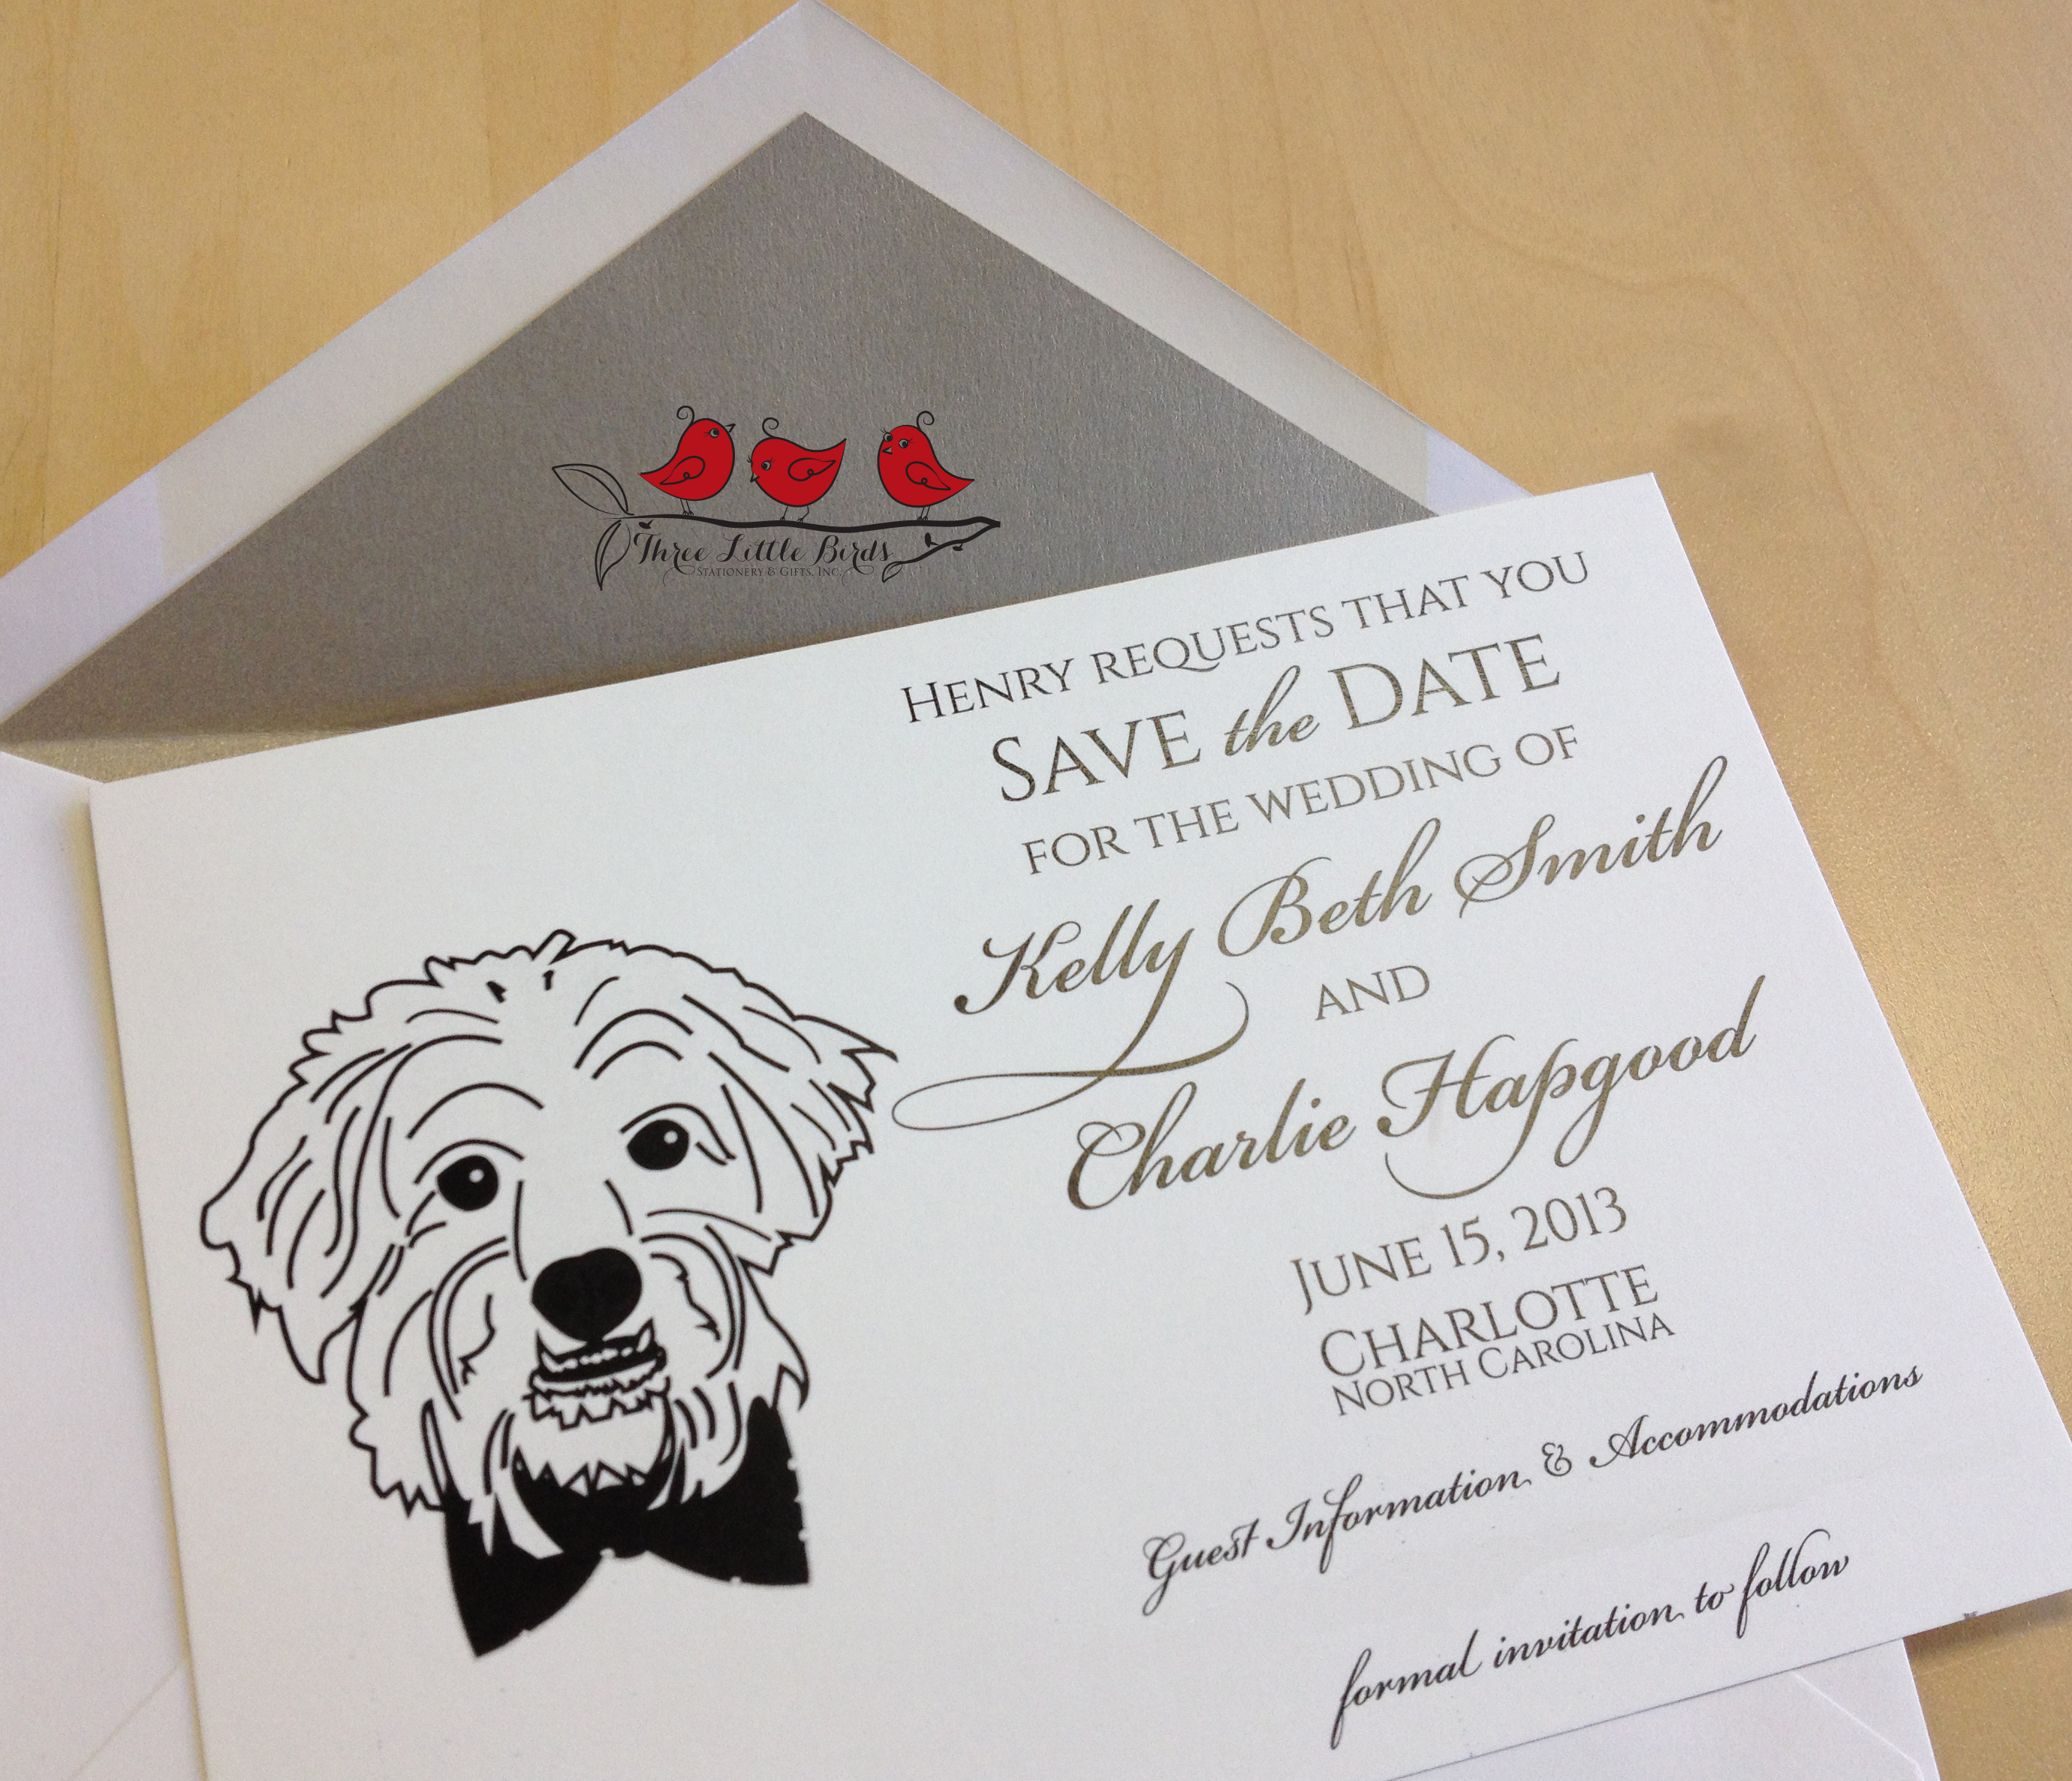 Three Little Birds - Save the Date - Dog - Henry